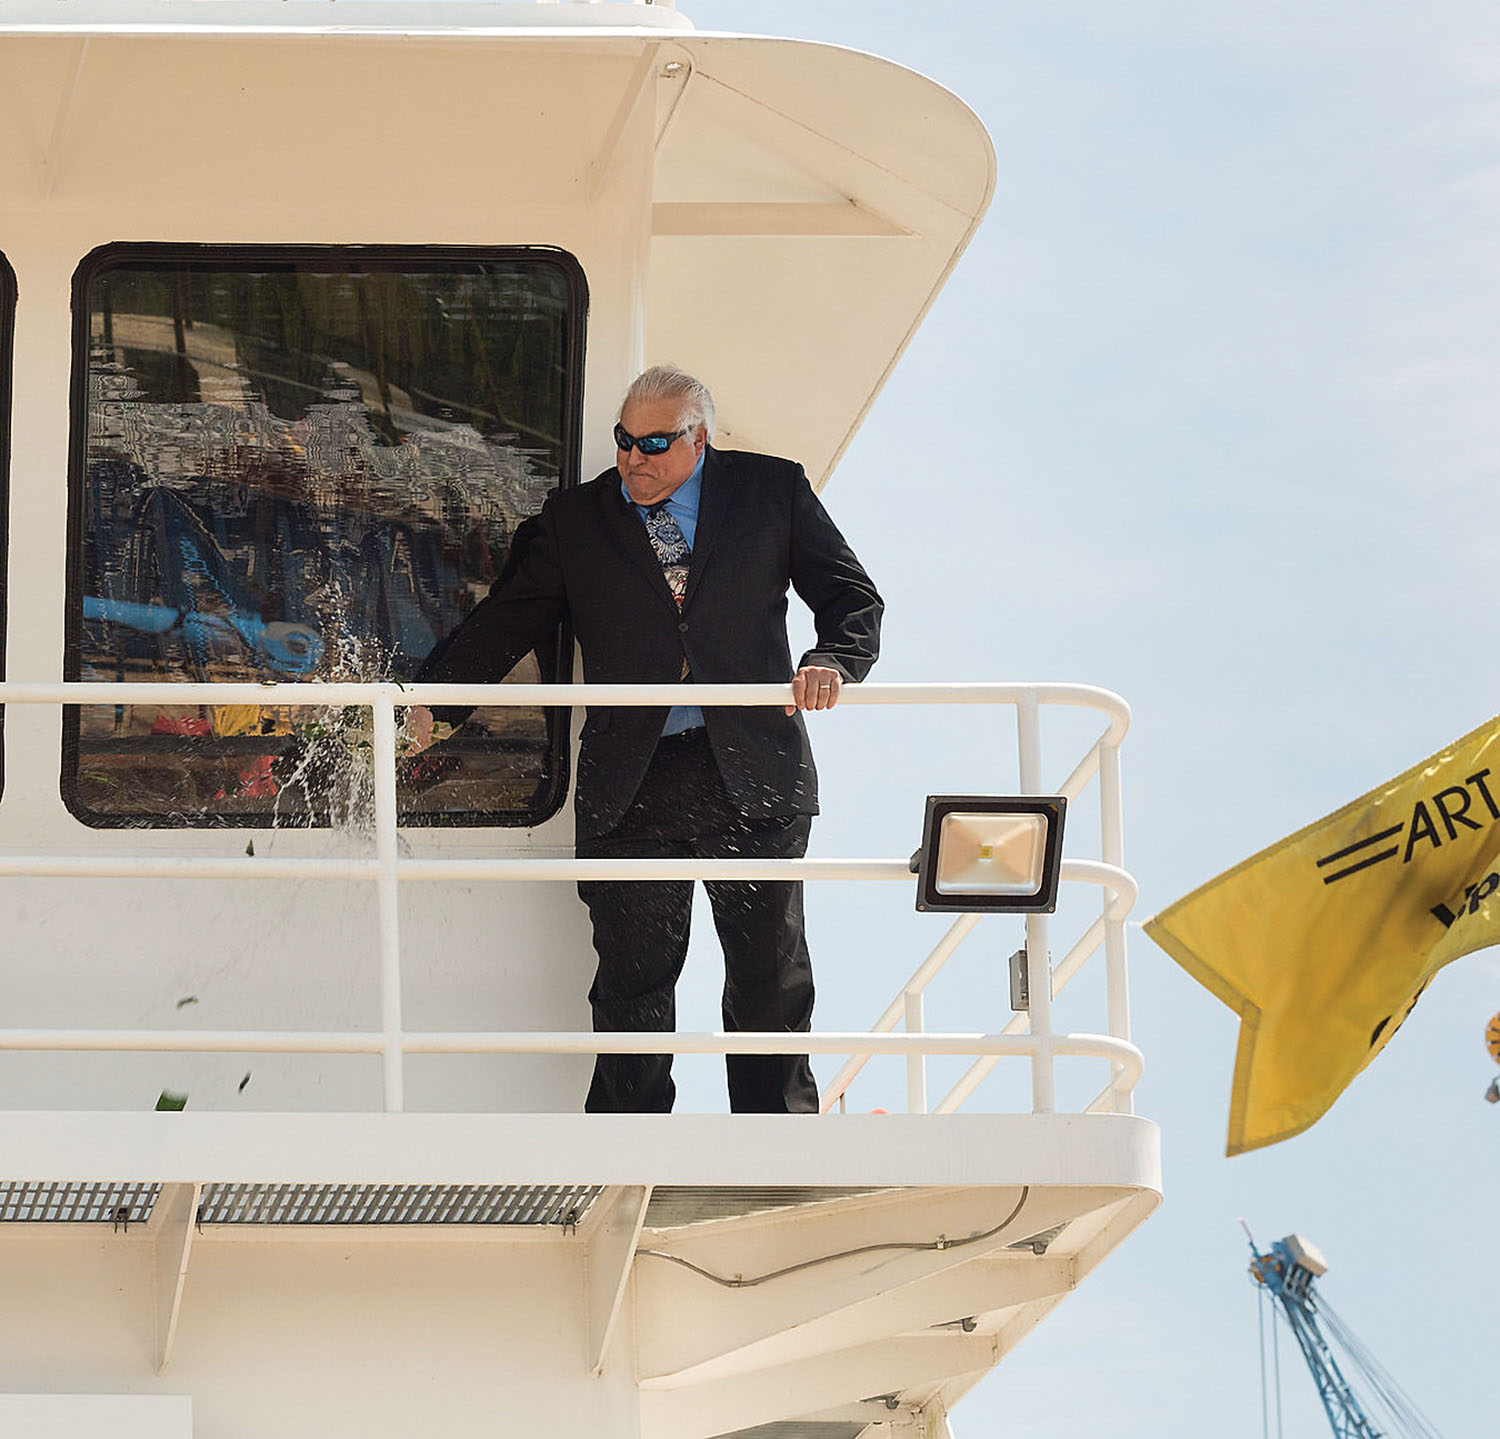 The Louisiana Transporter is christened by Anthony Taormina. (Photo courtesy of ARTCO)